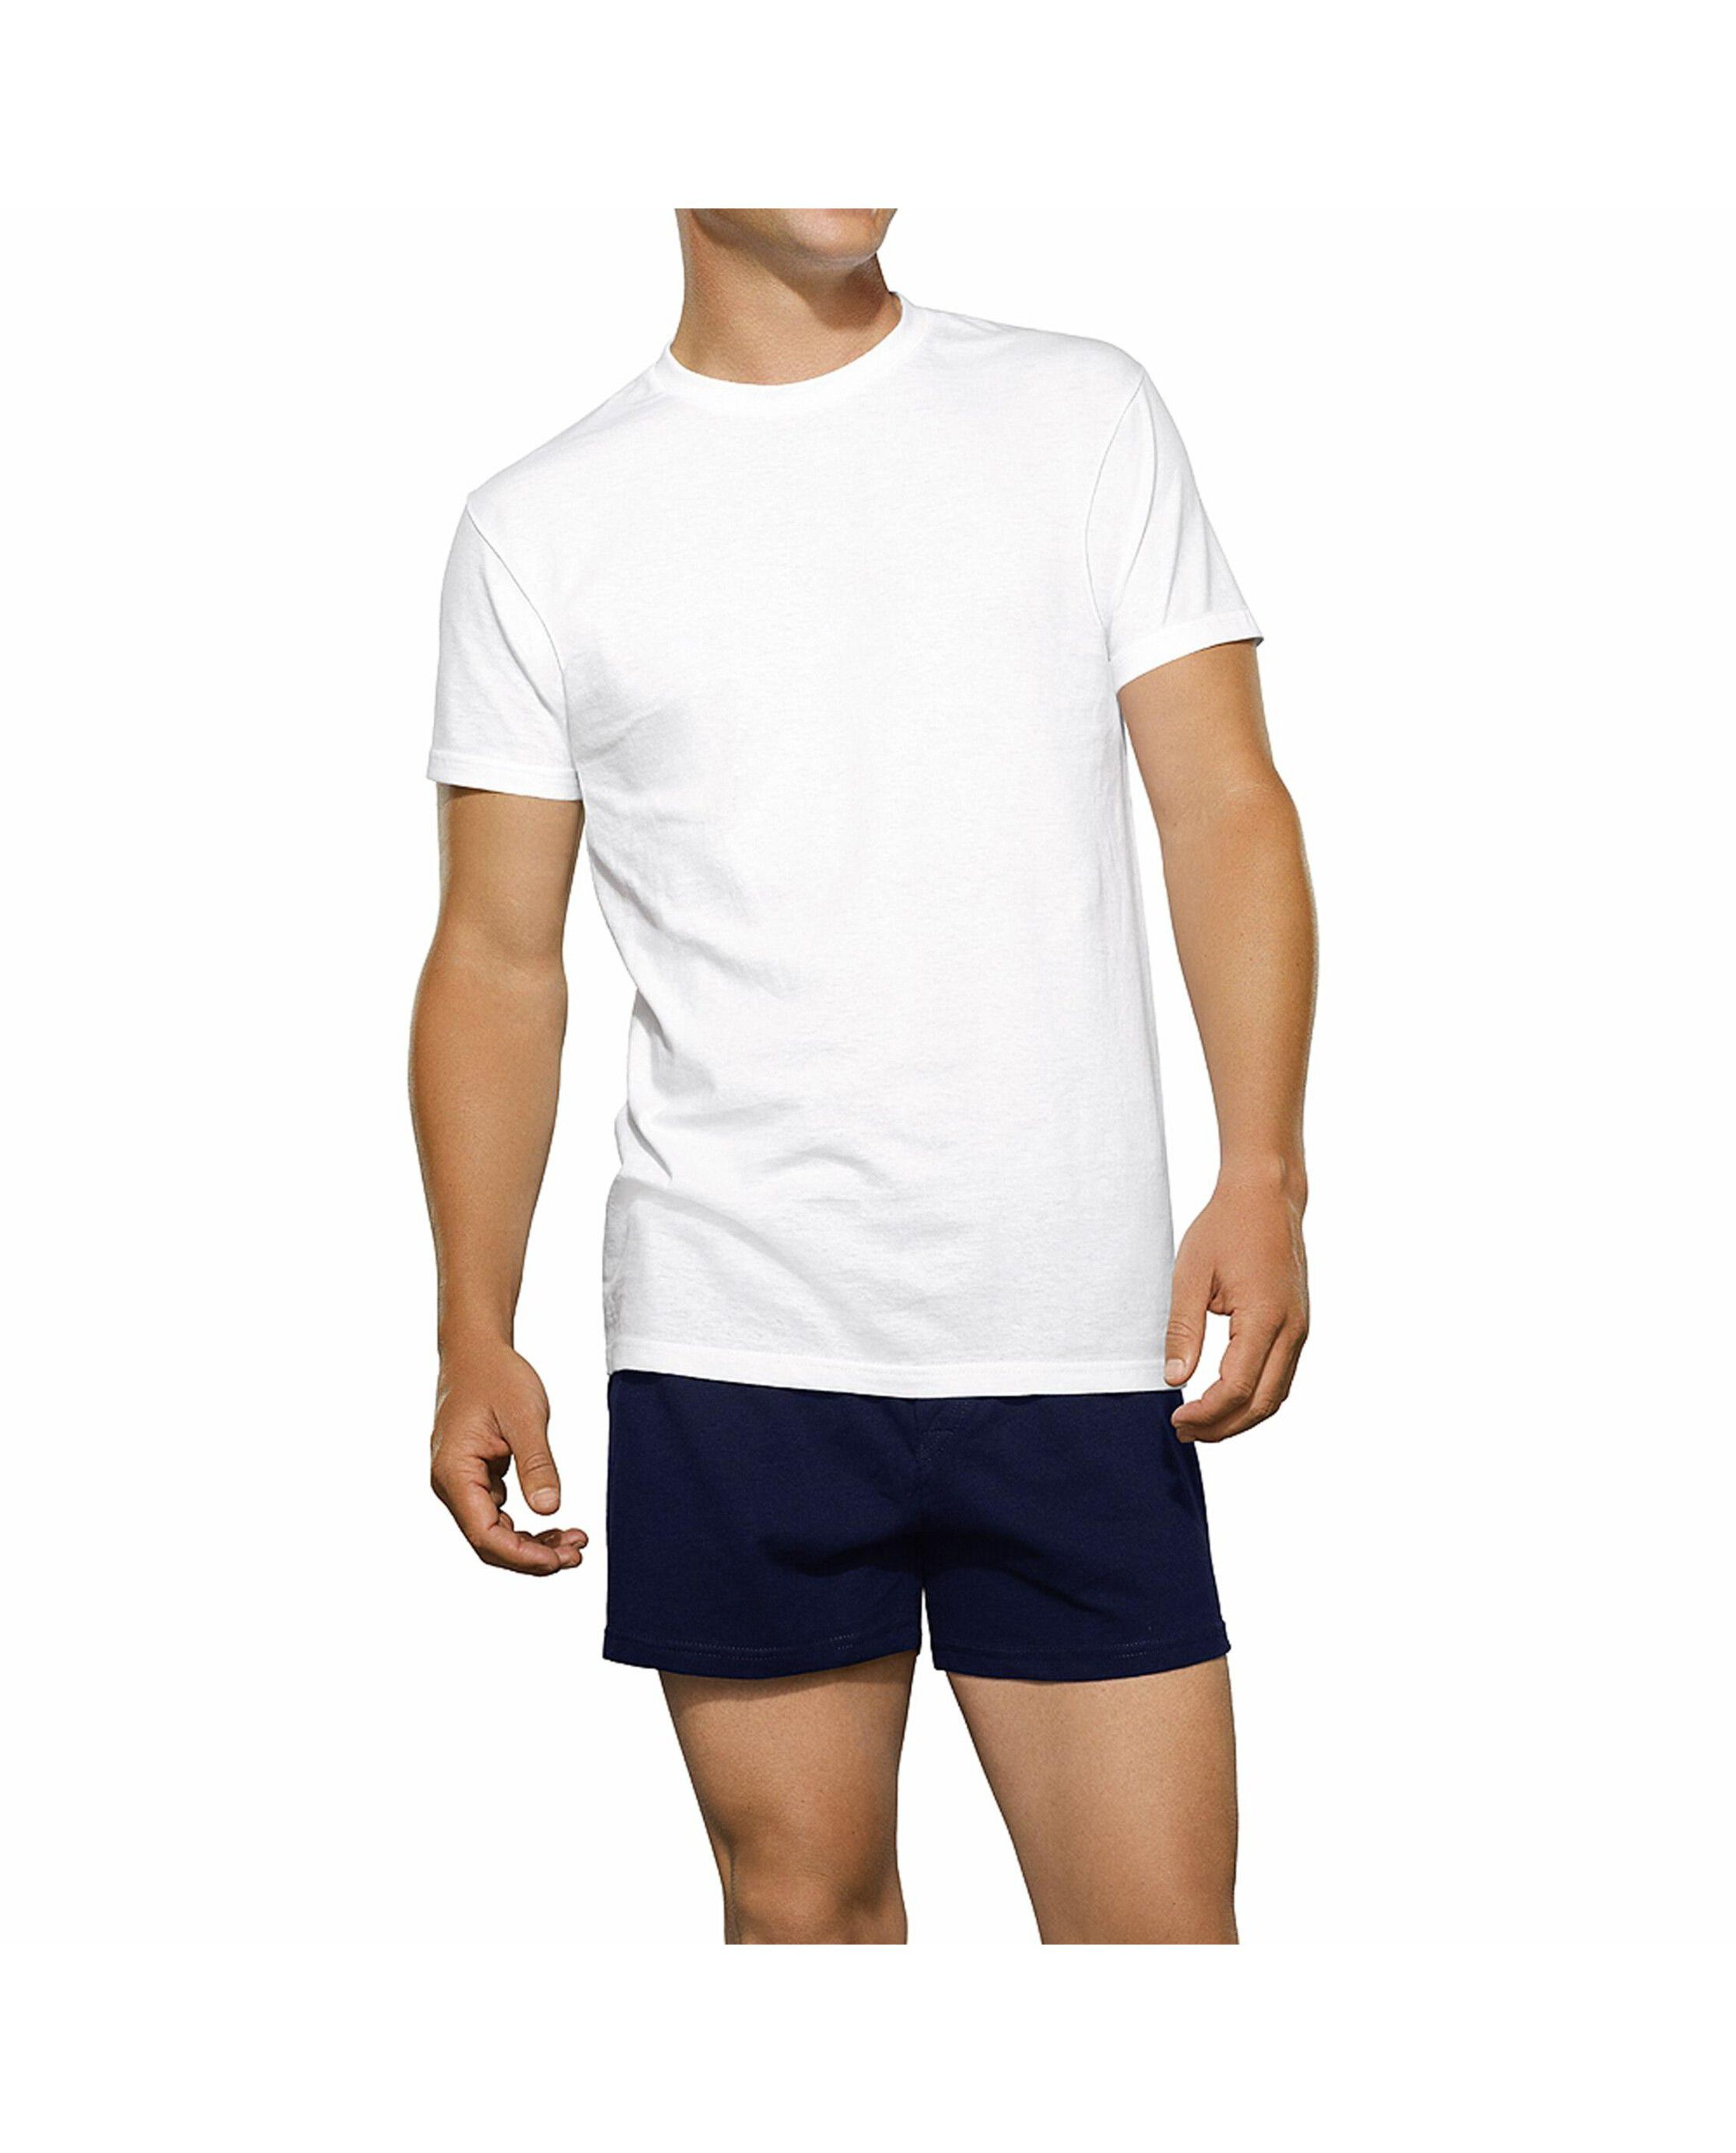 New Men/'s White T-Shirt Undershirt Tee 6 in pack Crewneck size L XL